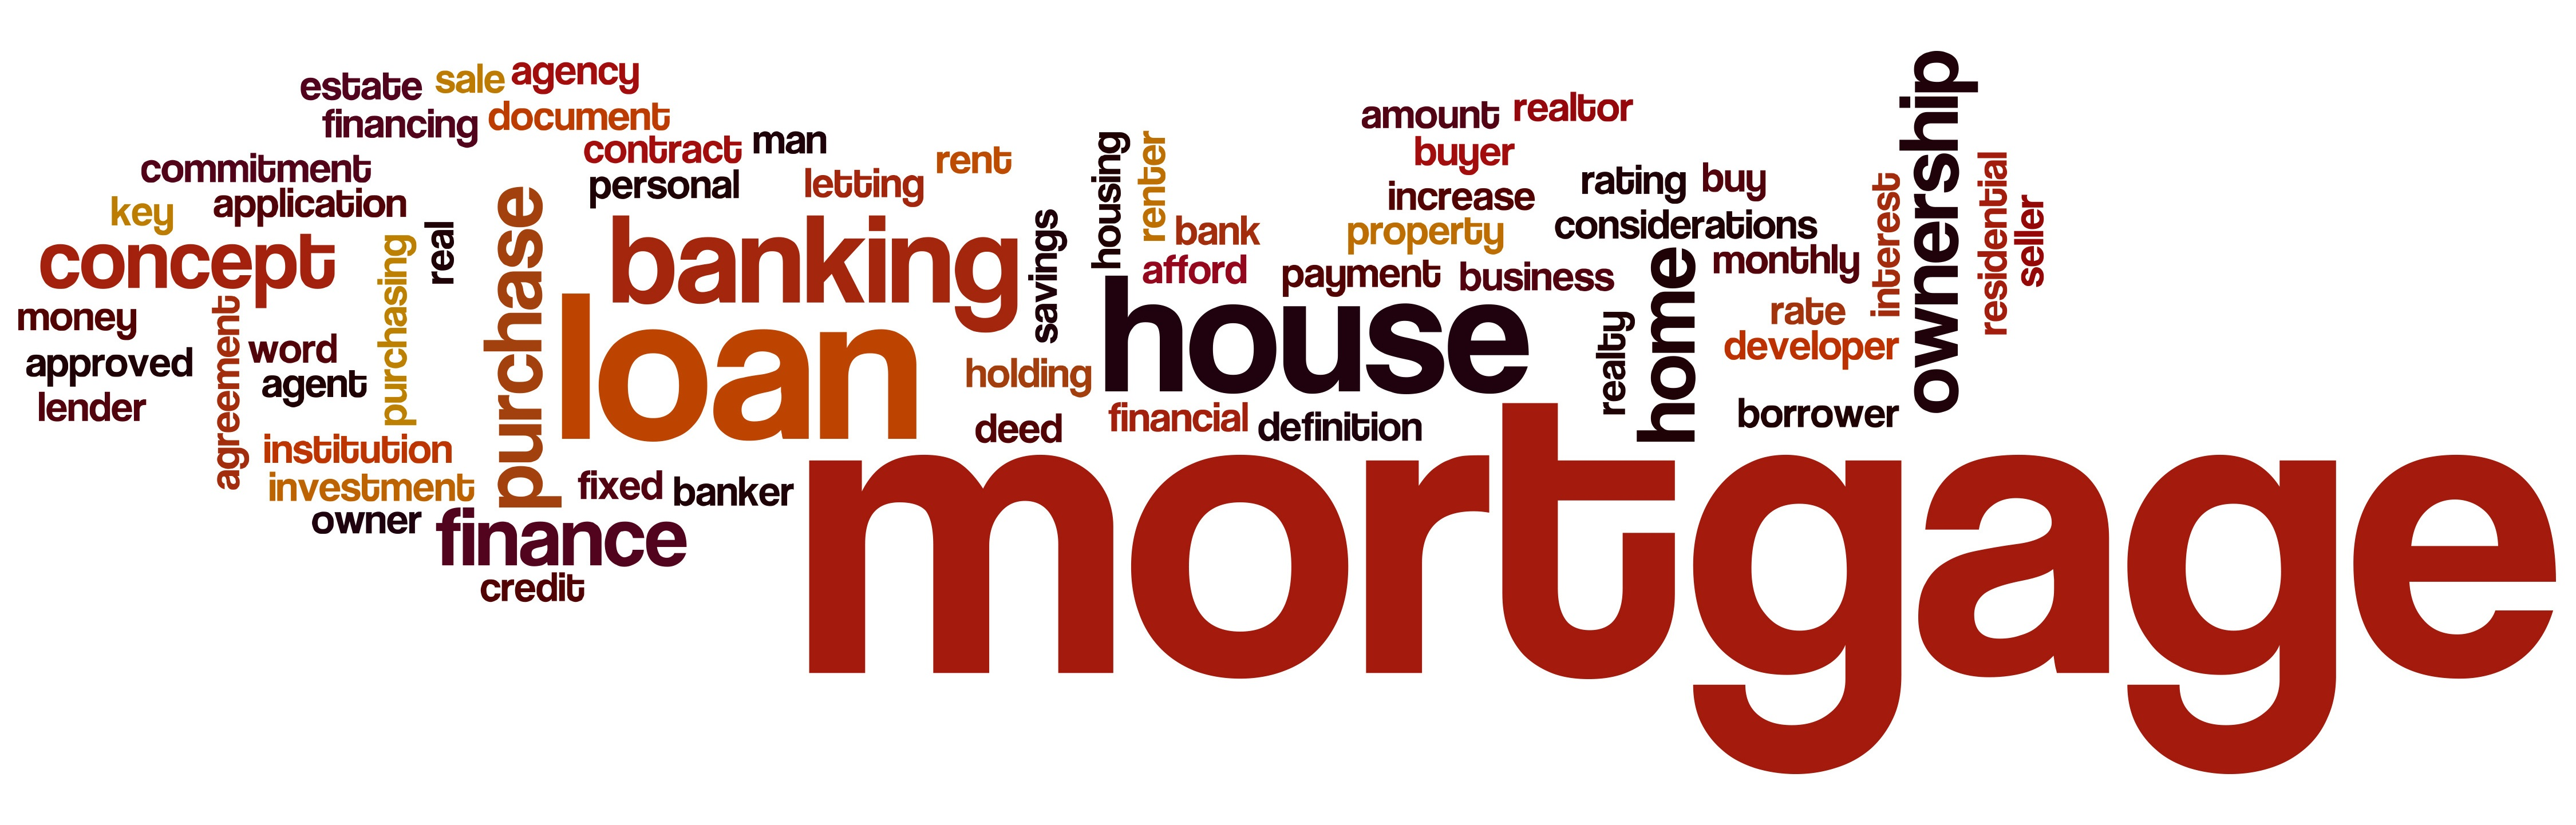 Mortgage Closing Costs